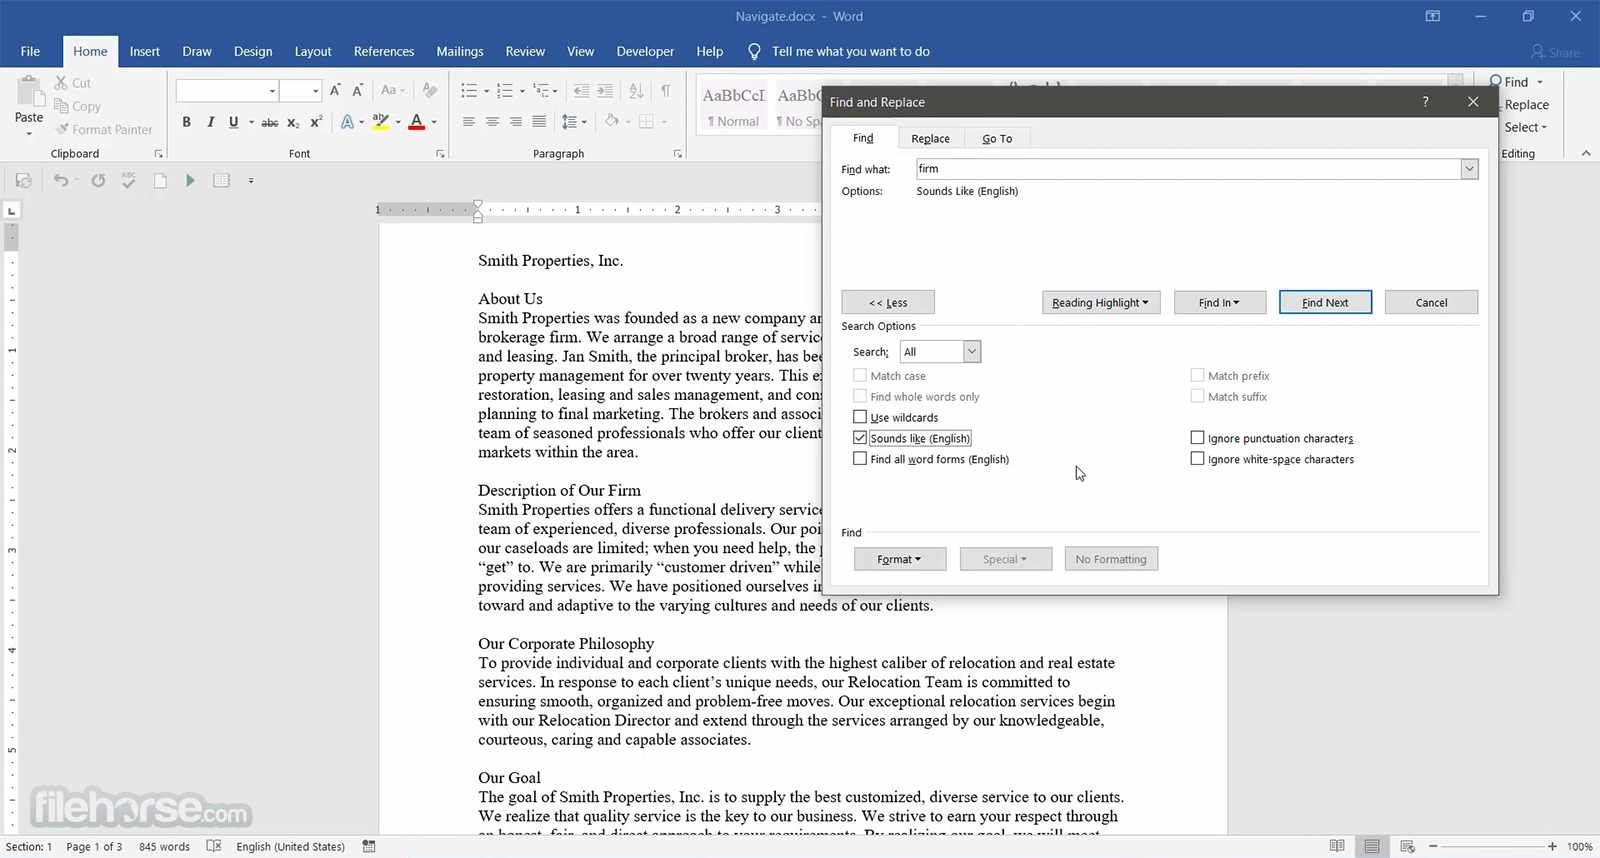 Microsoft Word 2016 Screenshot 3